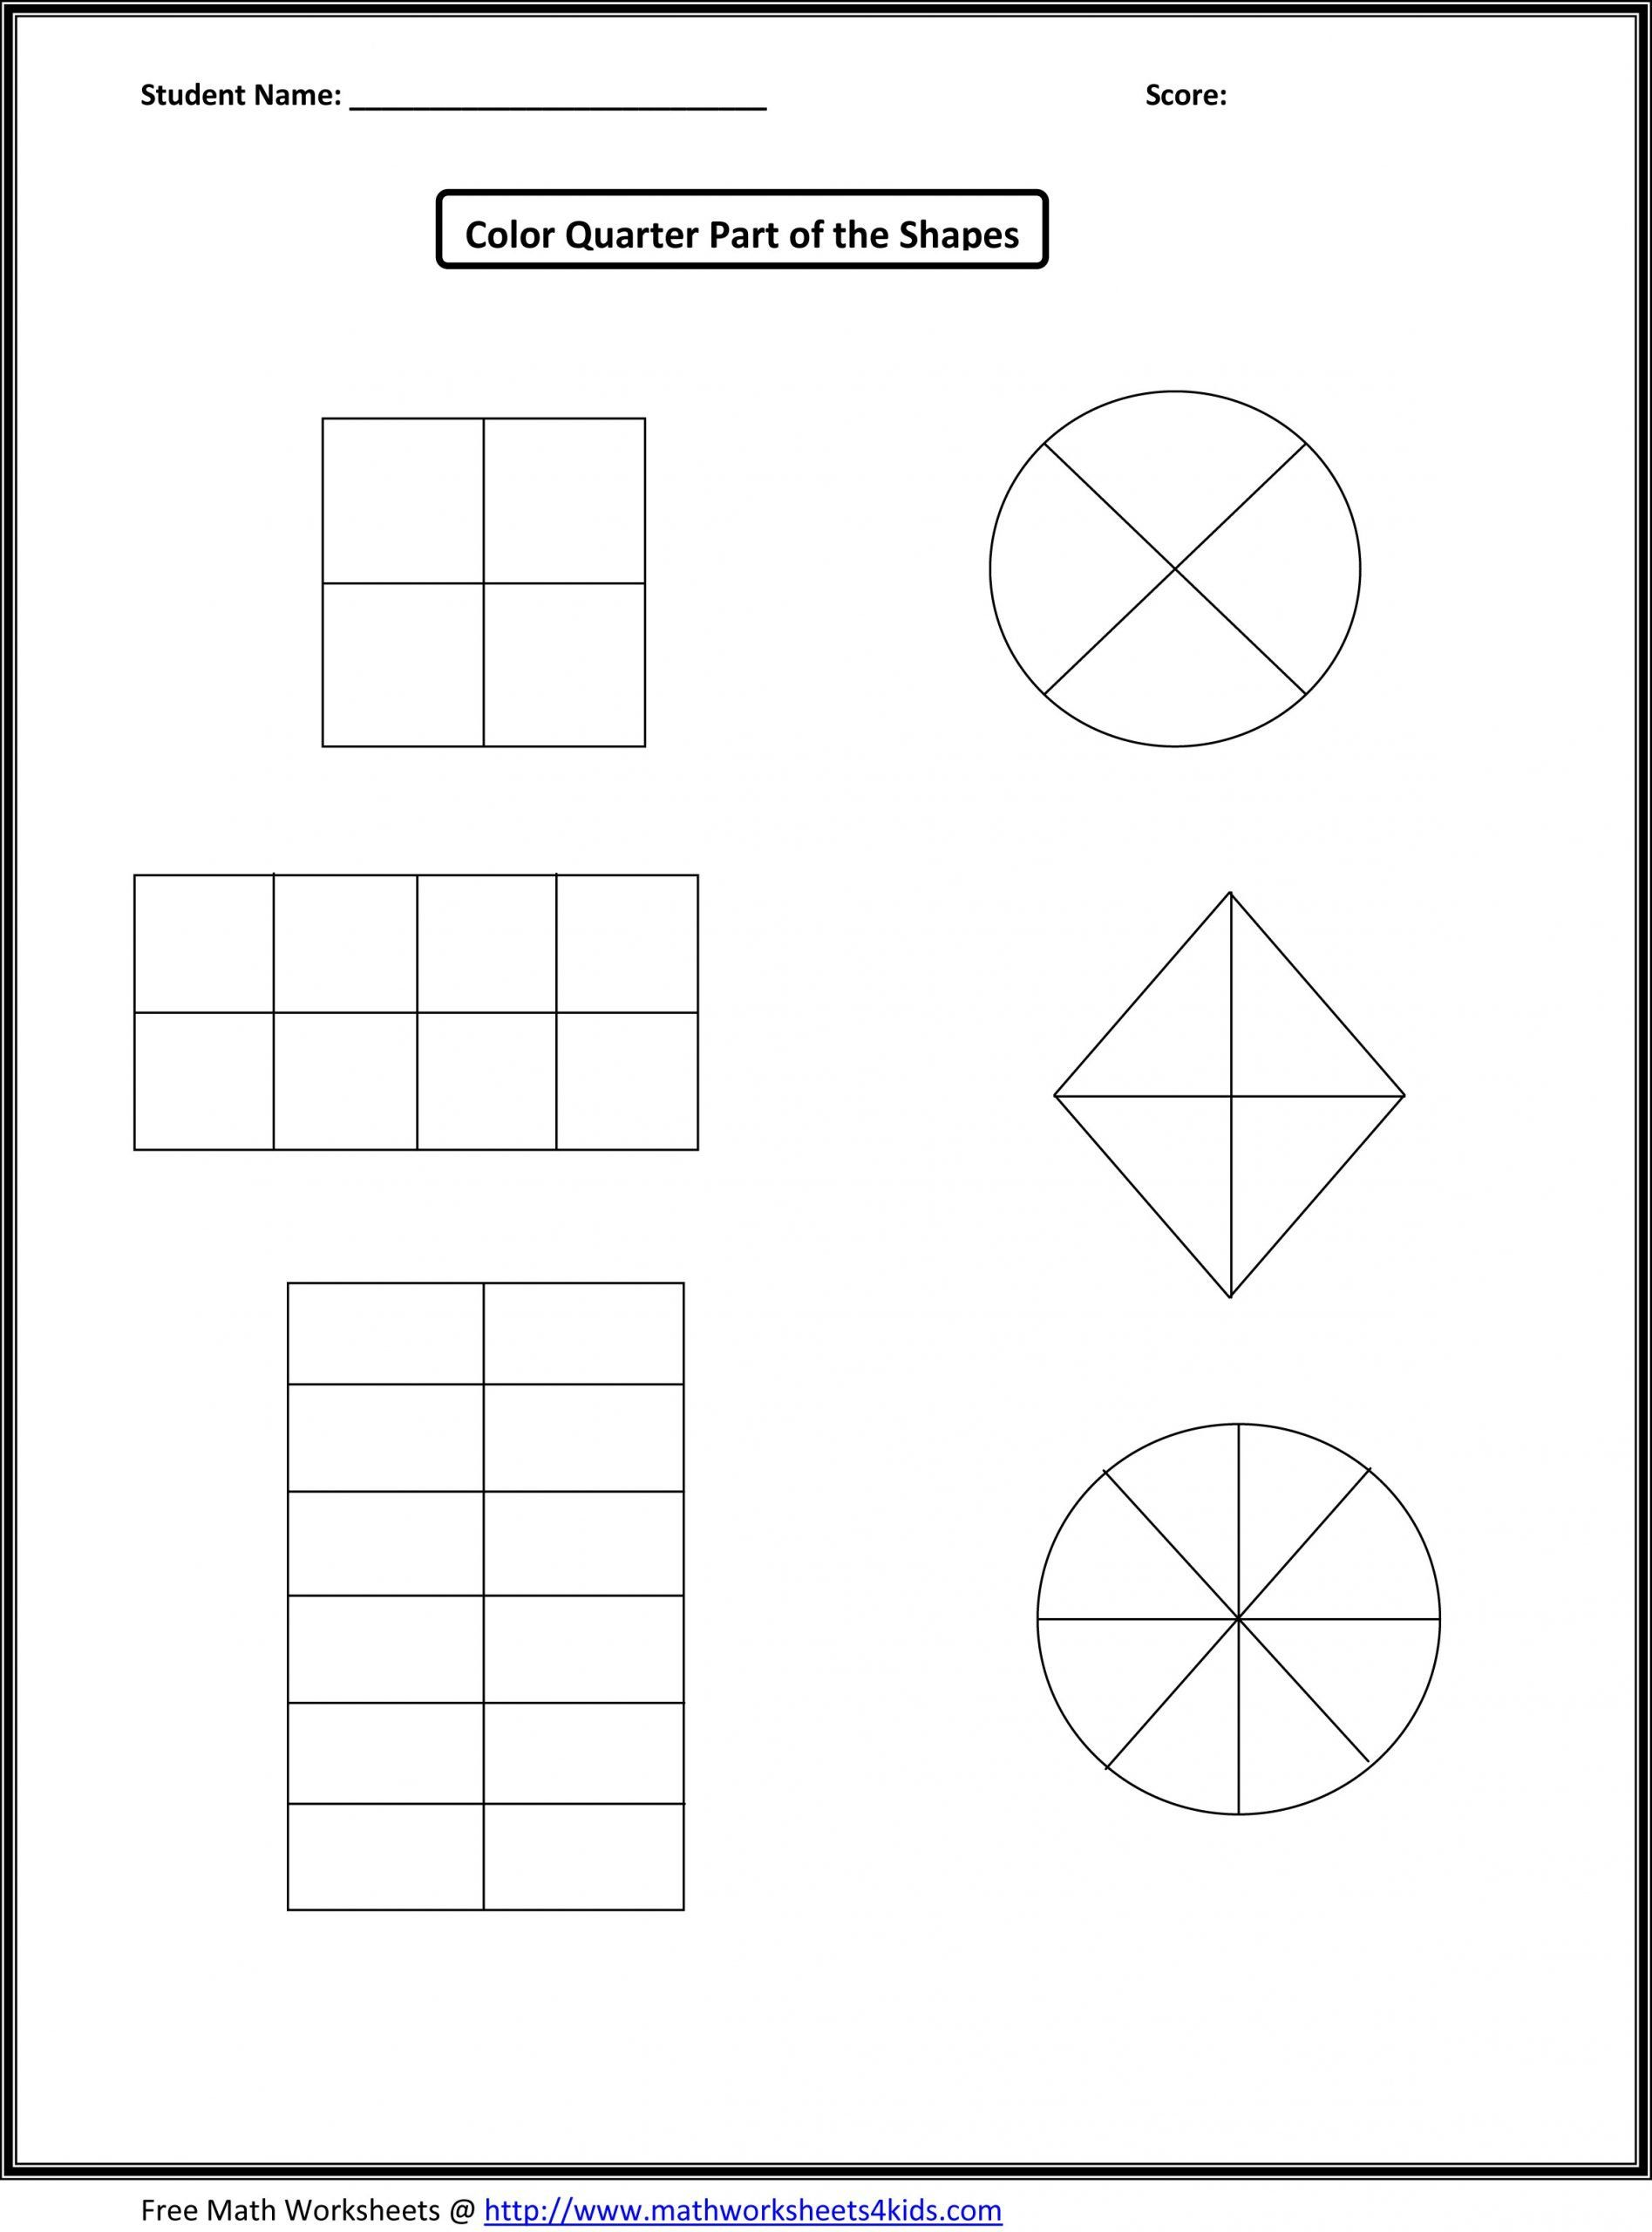 First Grade Fractions Worksheets A1 Wk 7 8 Halves And